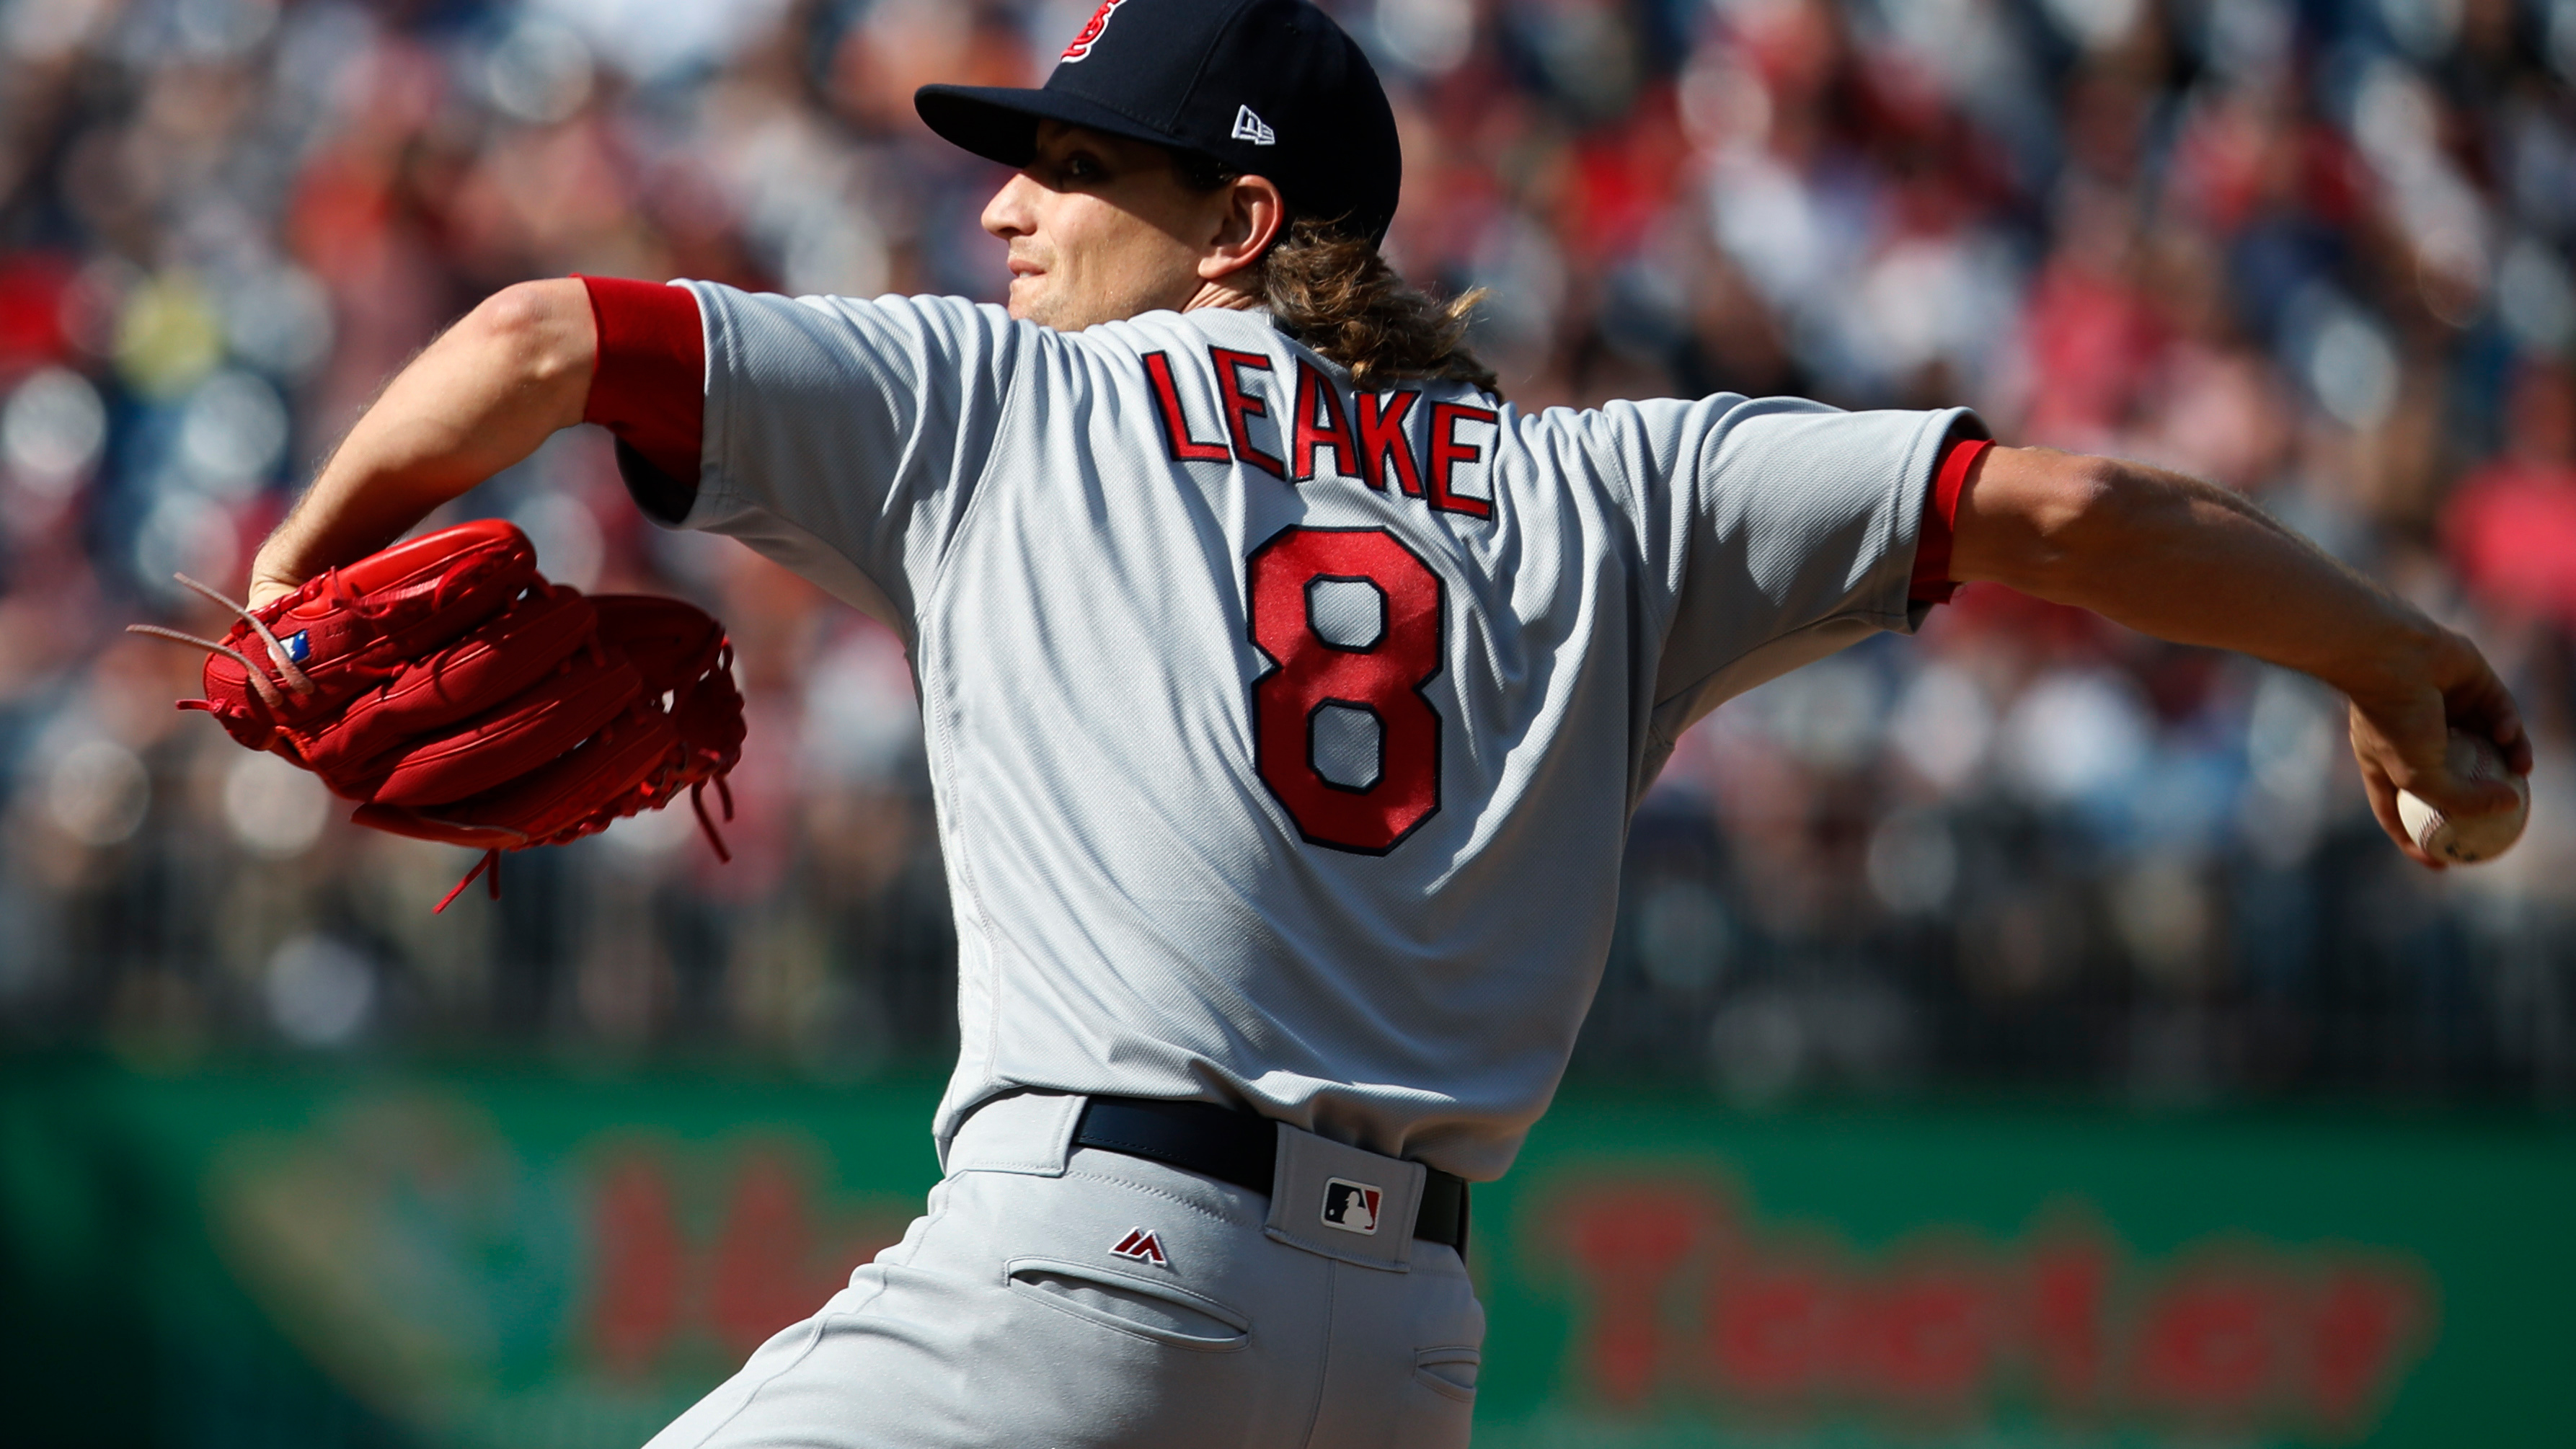 Leake's arm, Piscotty's bat lift Cards over Nats 6-1